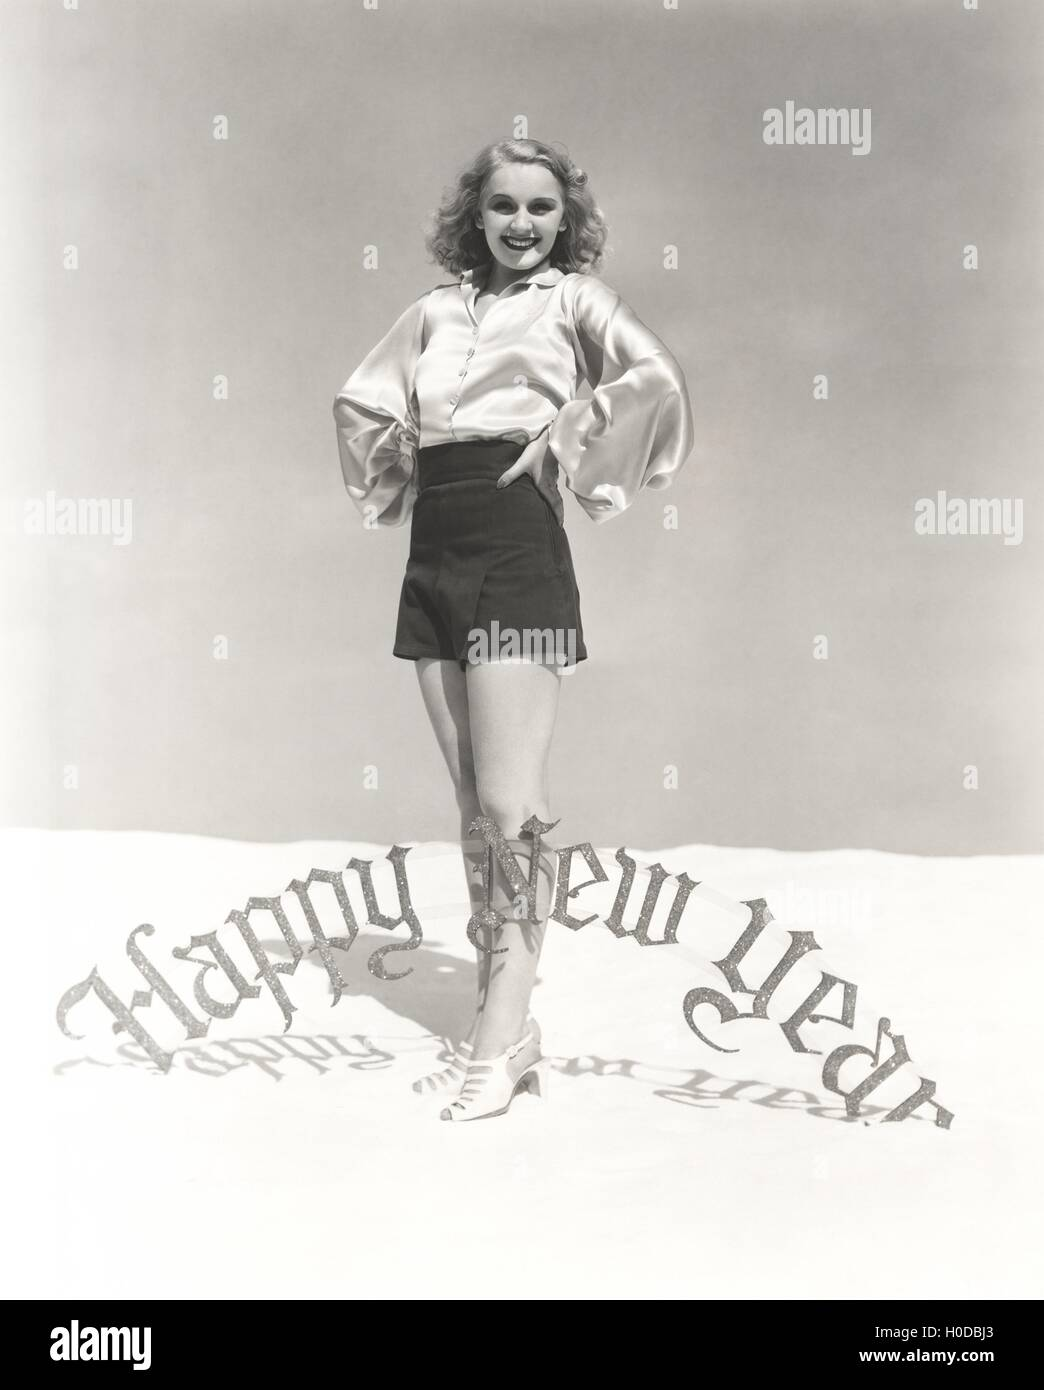 Portrait of smiling woman standing by Happy New Year sign - Stock Image